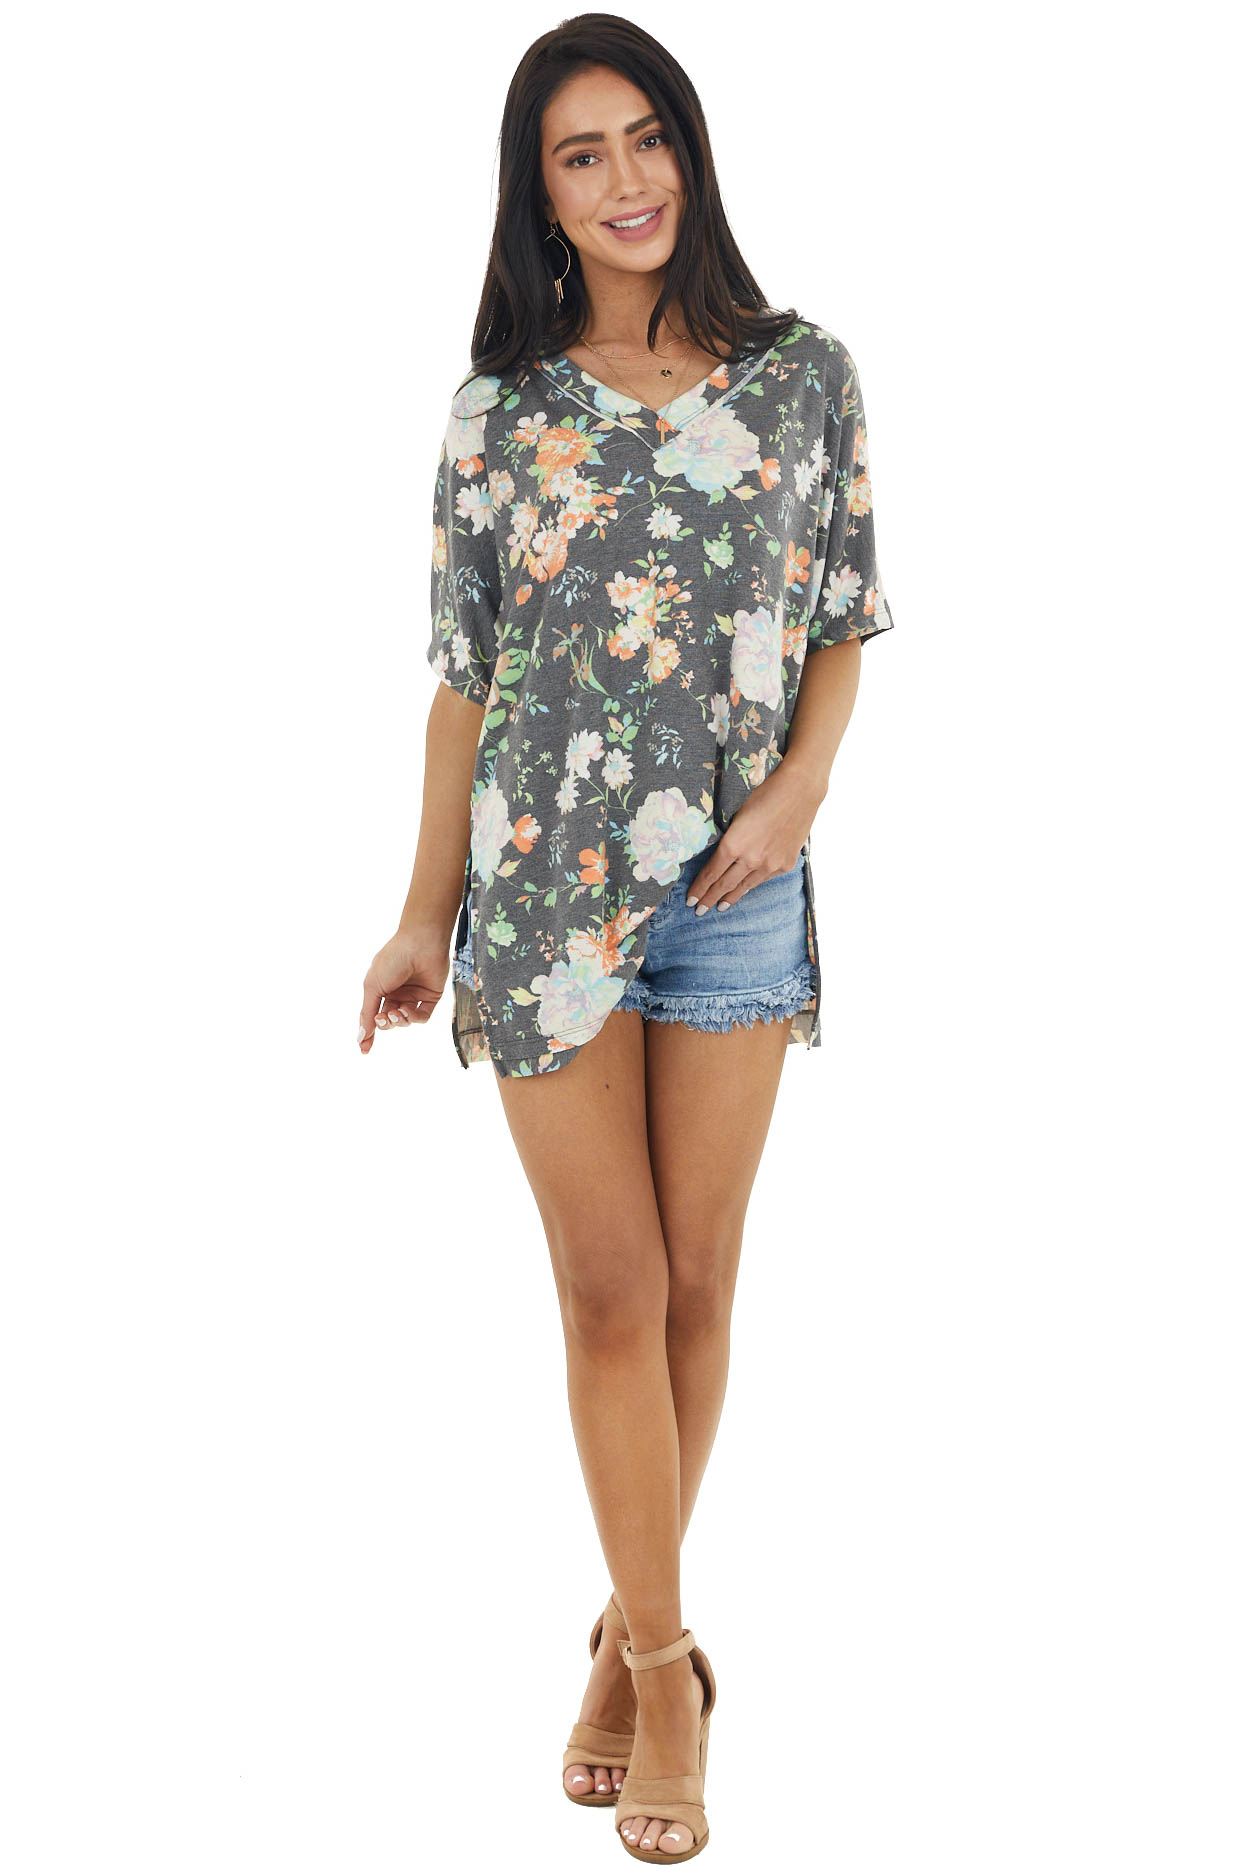 Charcoal Grey Floral Print V Neck Top with Short Sleeves